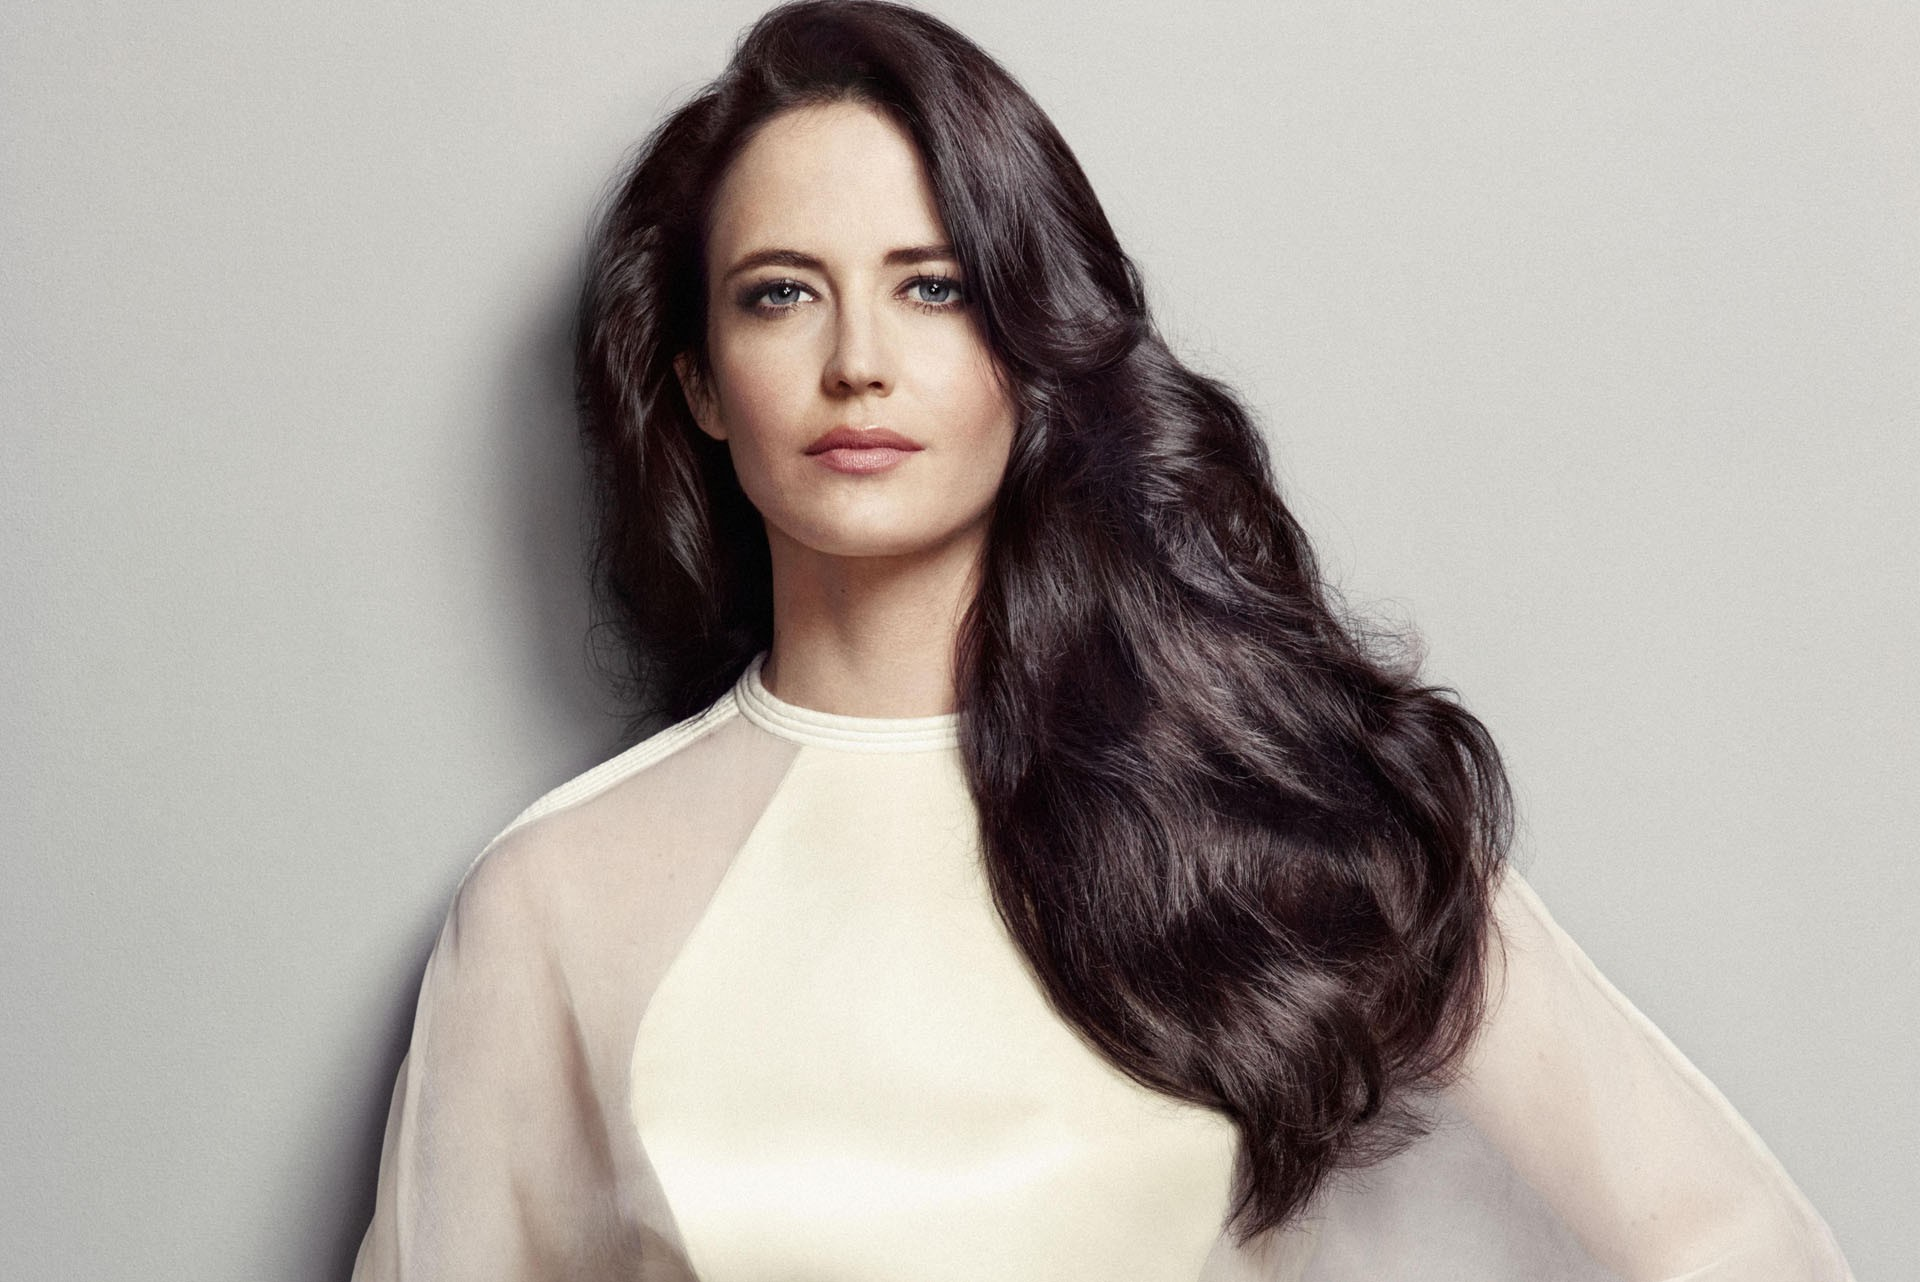 beautiful eva green lovrly cute look pose background download free mobile hd images